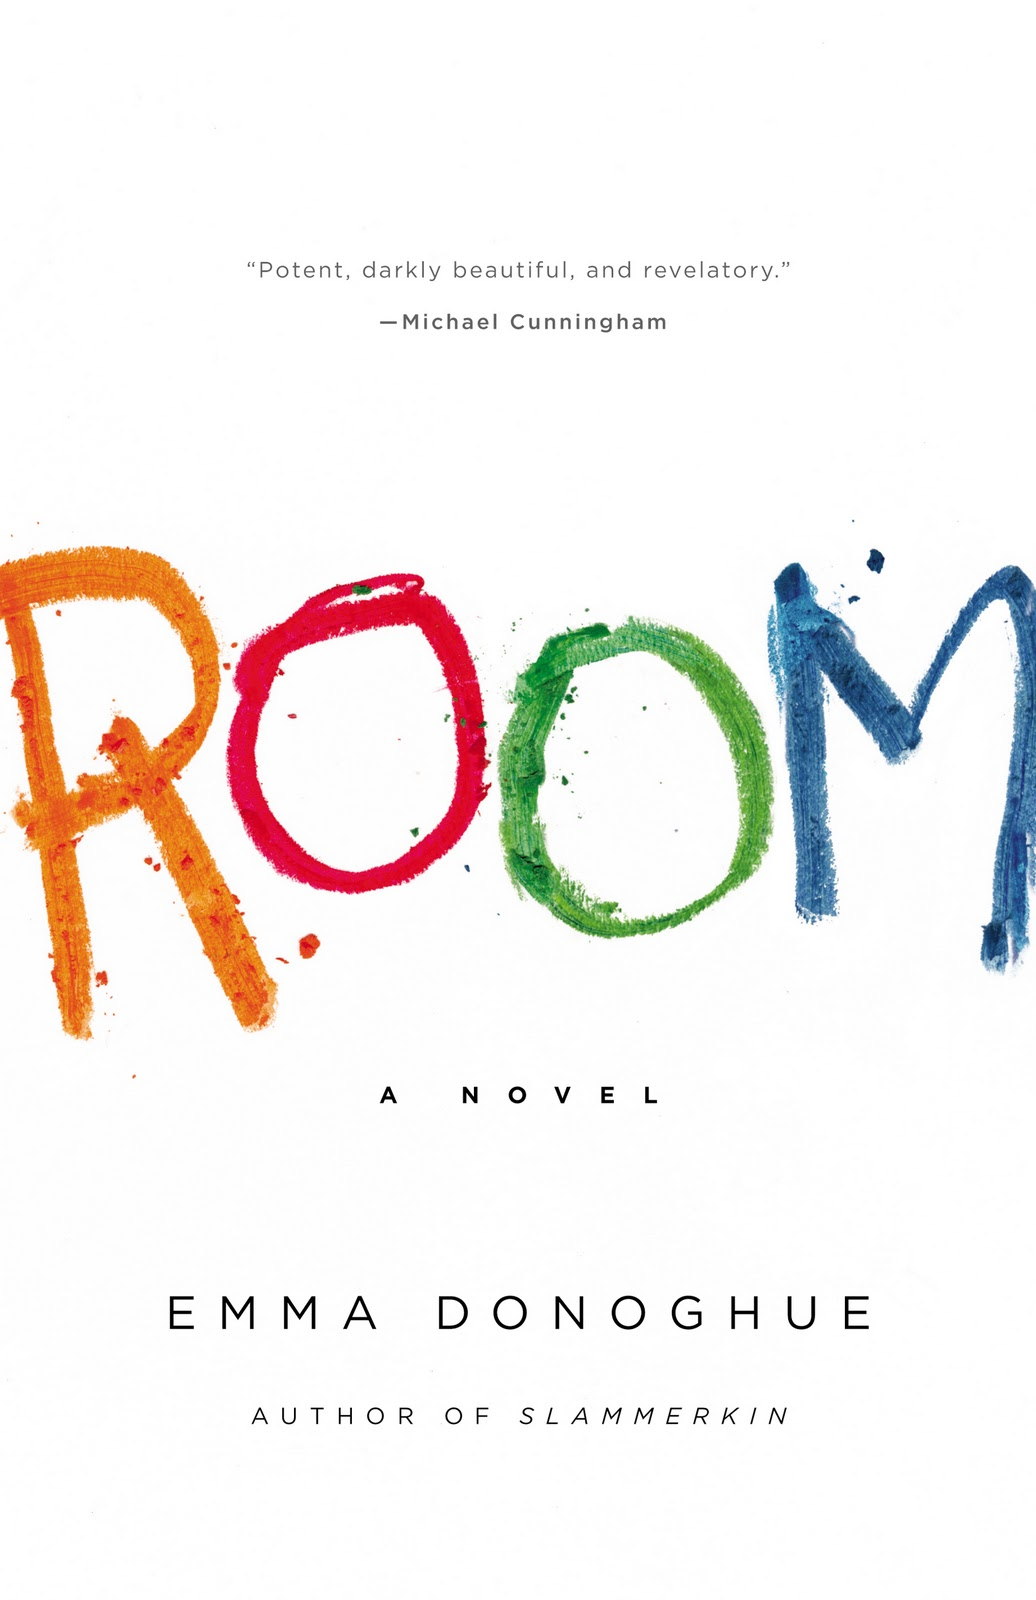 Minisode #7: Meltedy Spoonpisode / Room - The Book Squad explores the tiny yet oh-so-rich world of Room by Emma Donoghue. We talk about our favorite Jack-isms, Ma's character, and how we feel about the child narration. We also answer a terrible bookclub discussion question and dive into the real (and really awful) story that inspired Room. Plus: Emily and Mary review Happy Death Day, and we tell you what's on the #BookSquadBlog and what's coming up on the podcast. Rate, review, subscribe, and tell your friends!